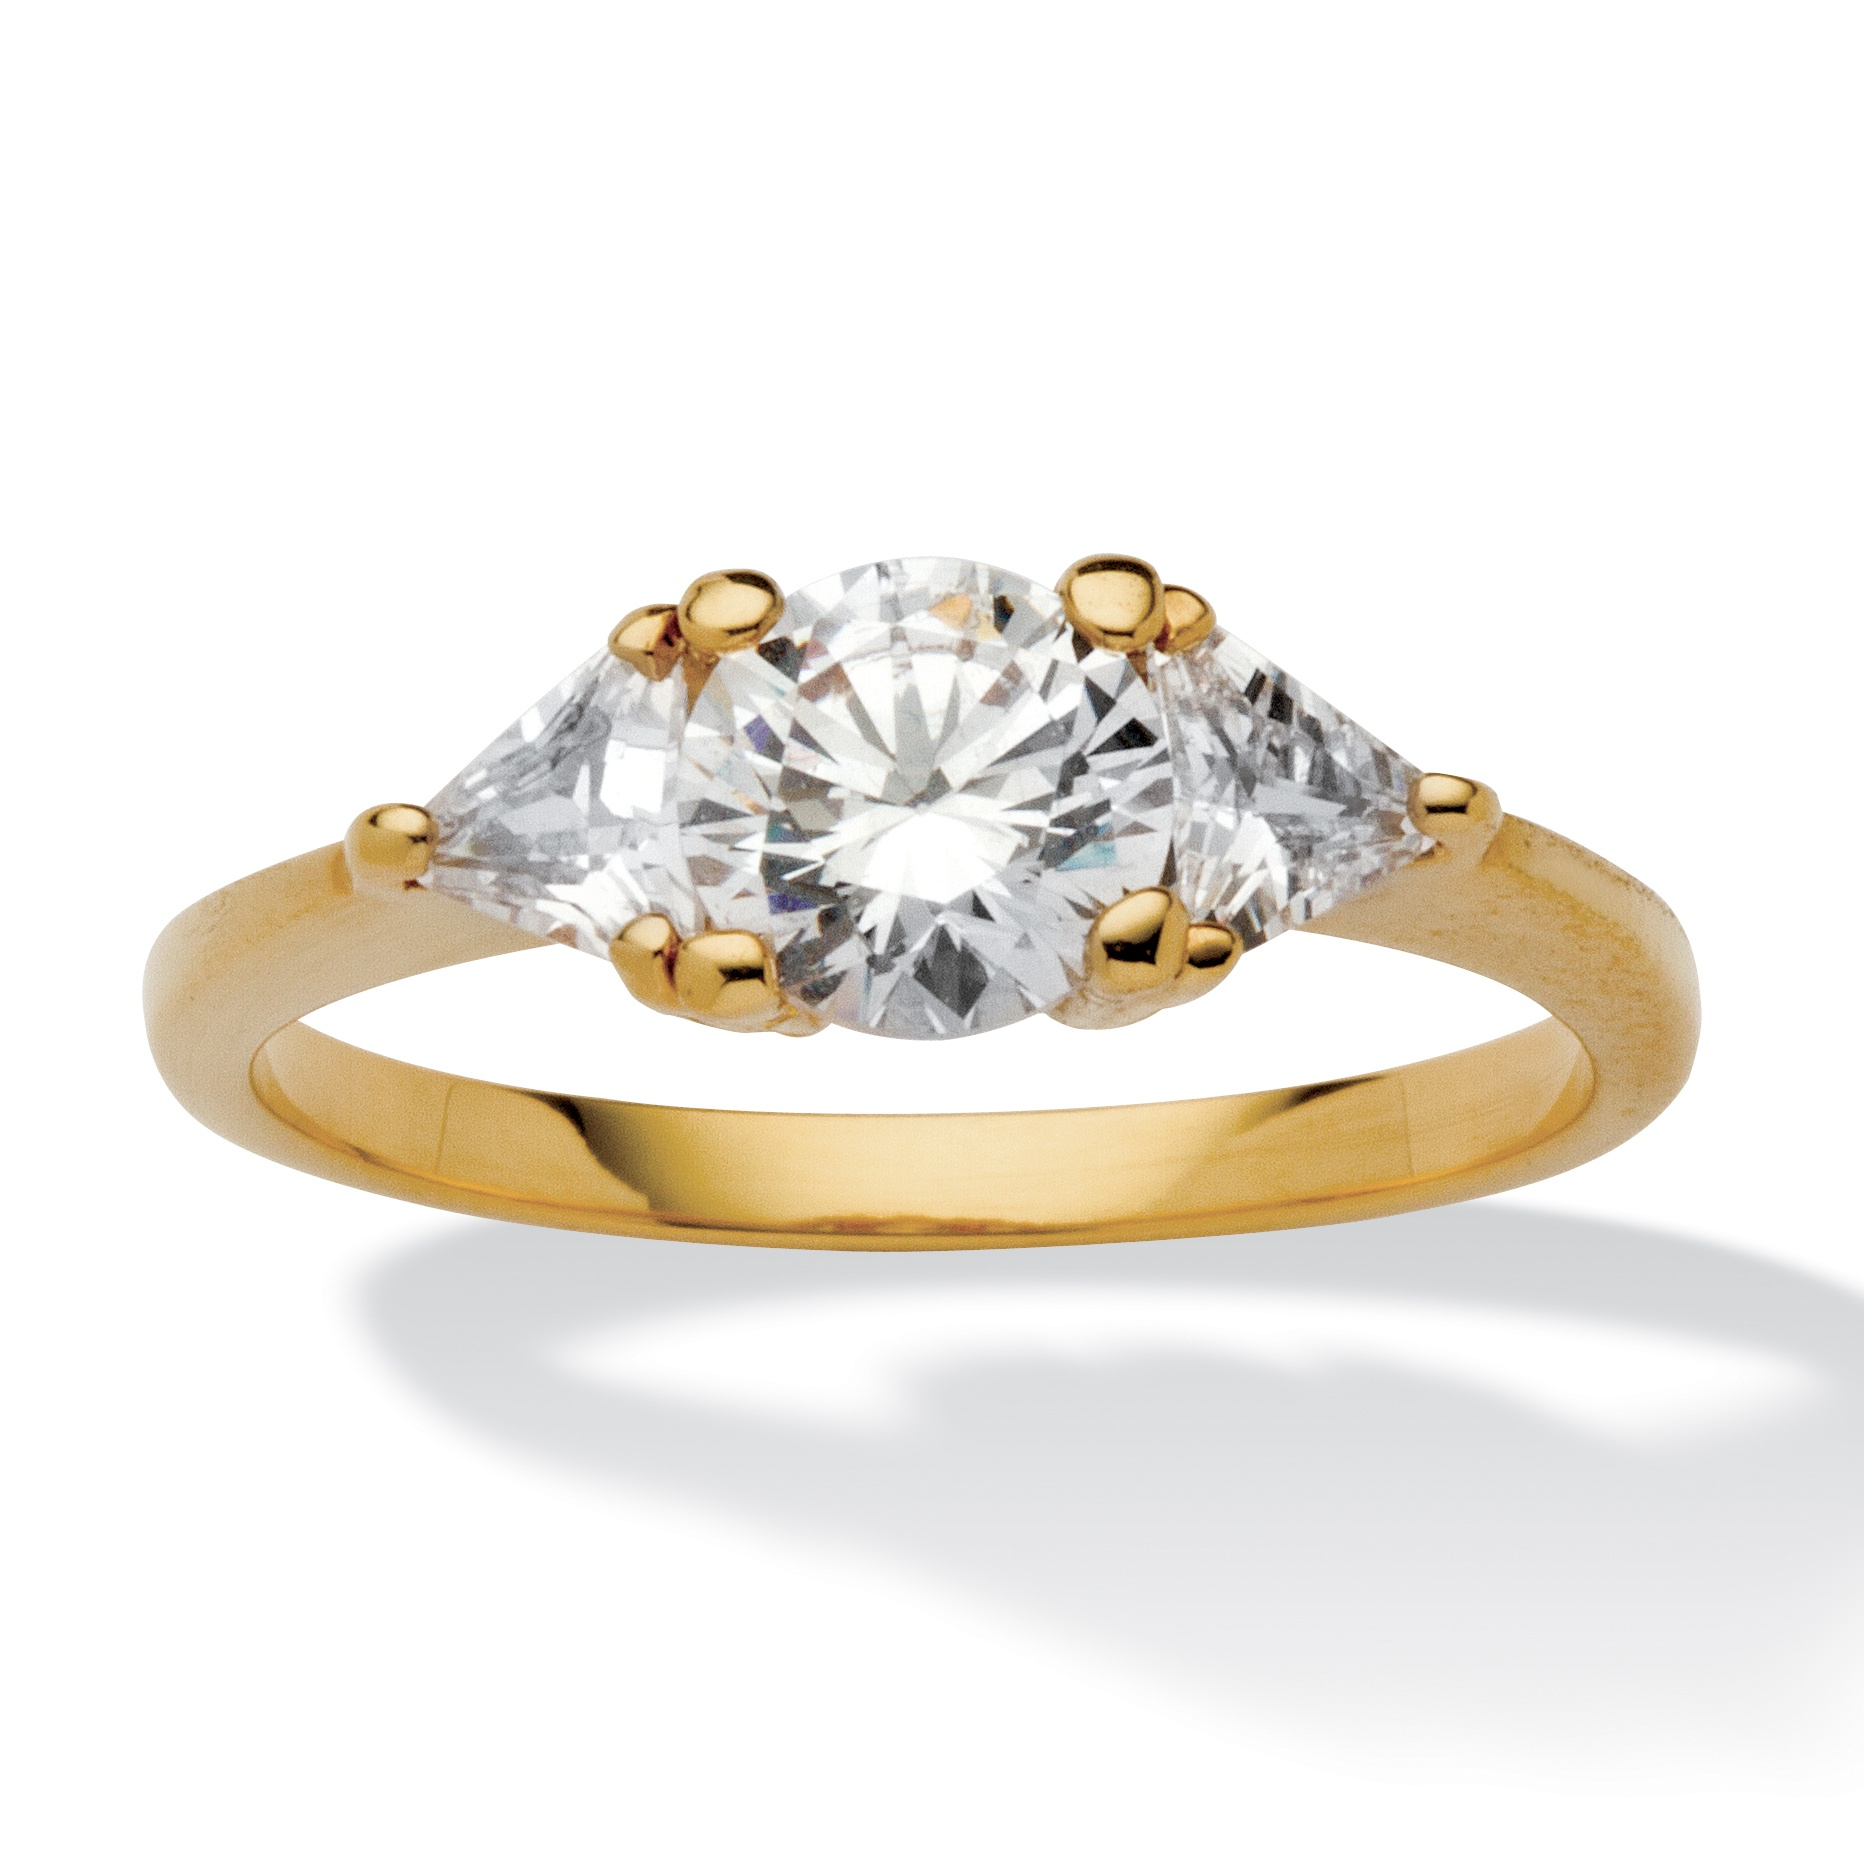 Gold Plated Wedding Rings: PalmBeach Jewelry 2.18 TCW CZ 14k Gold-Plated 3-Stone